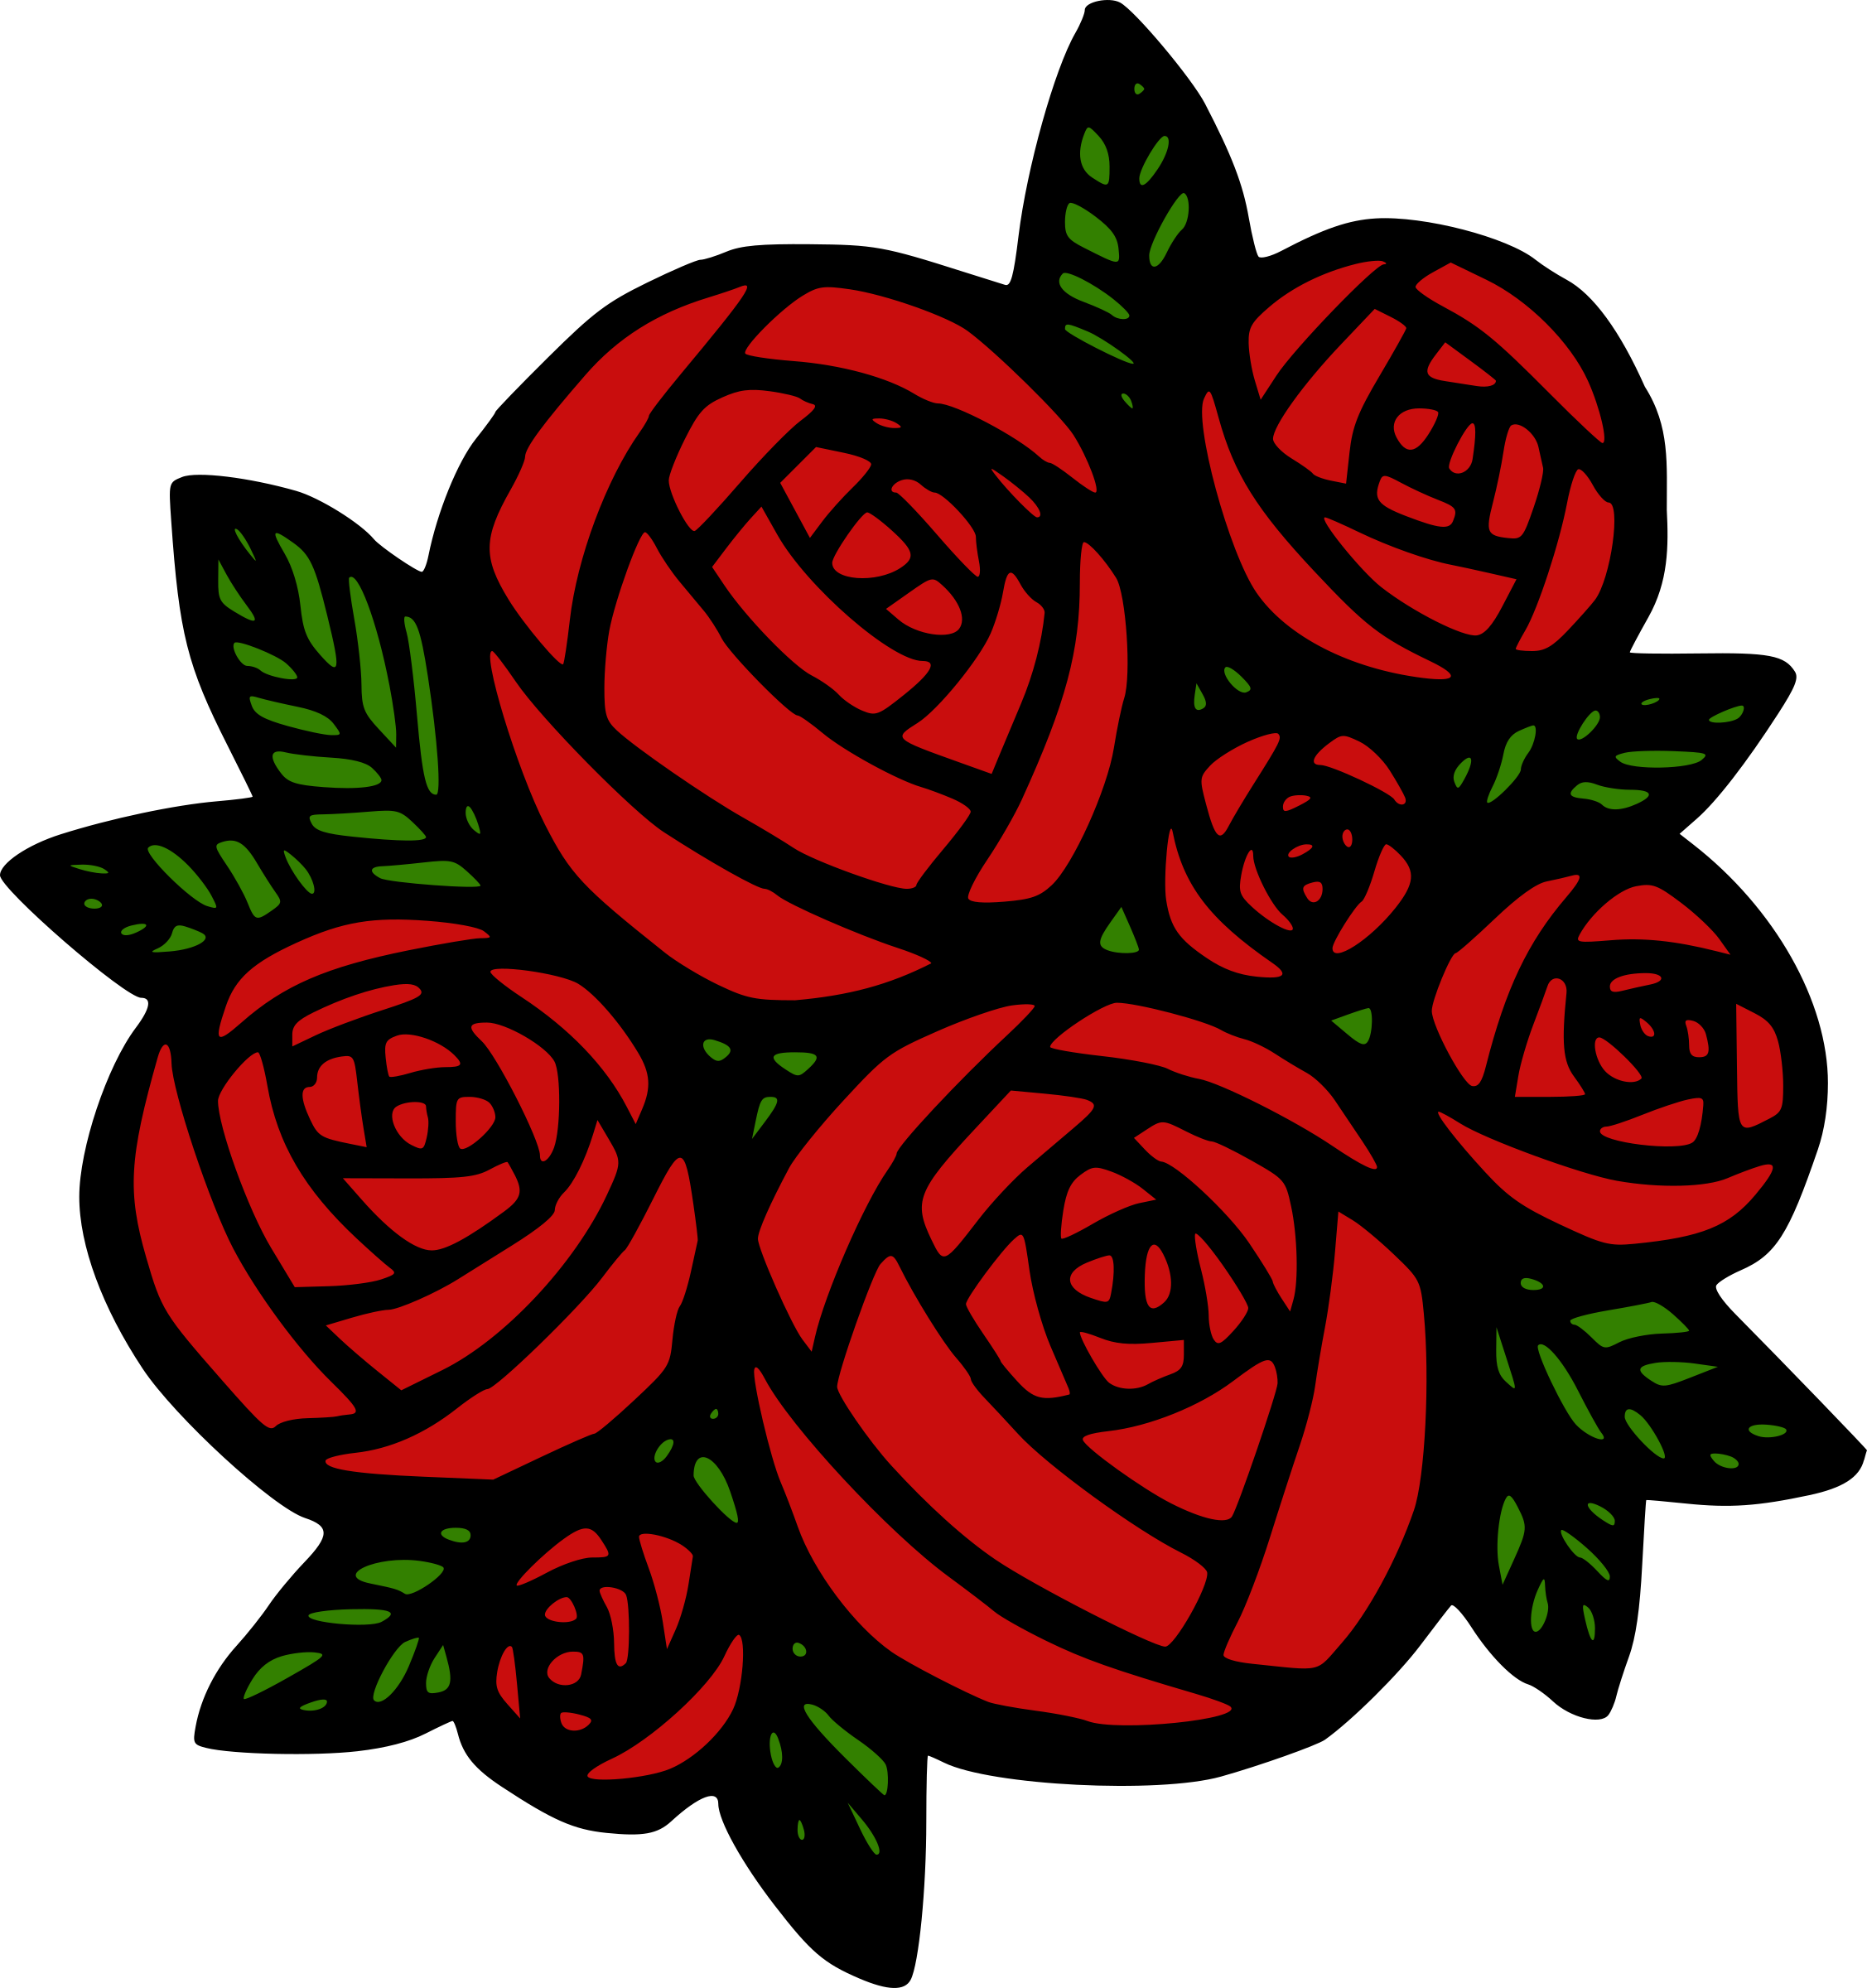 Rose clipart bunch. Of red roses icons